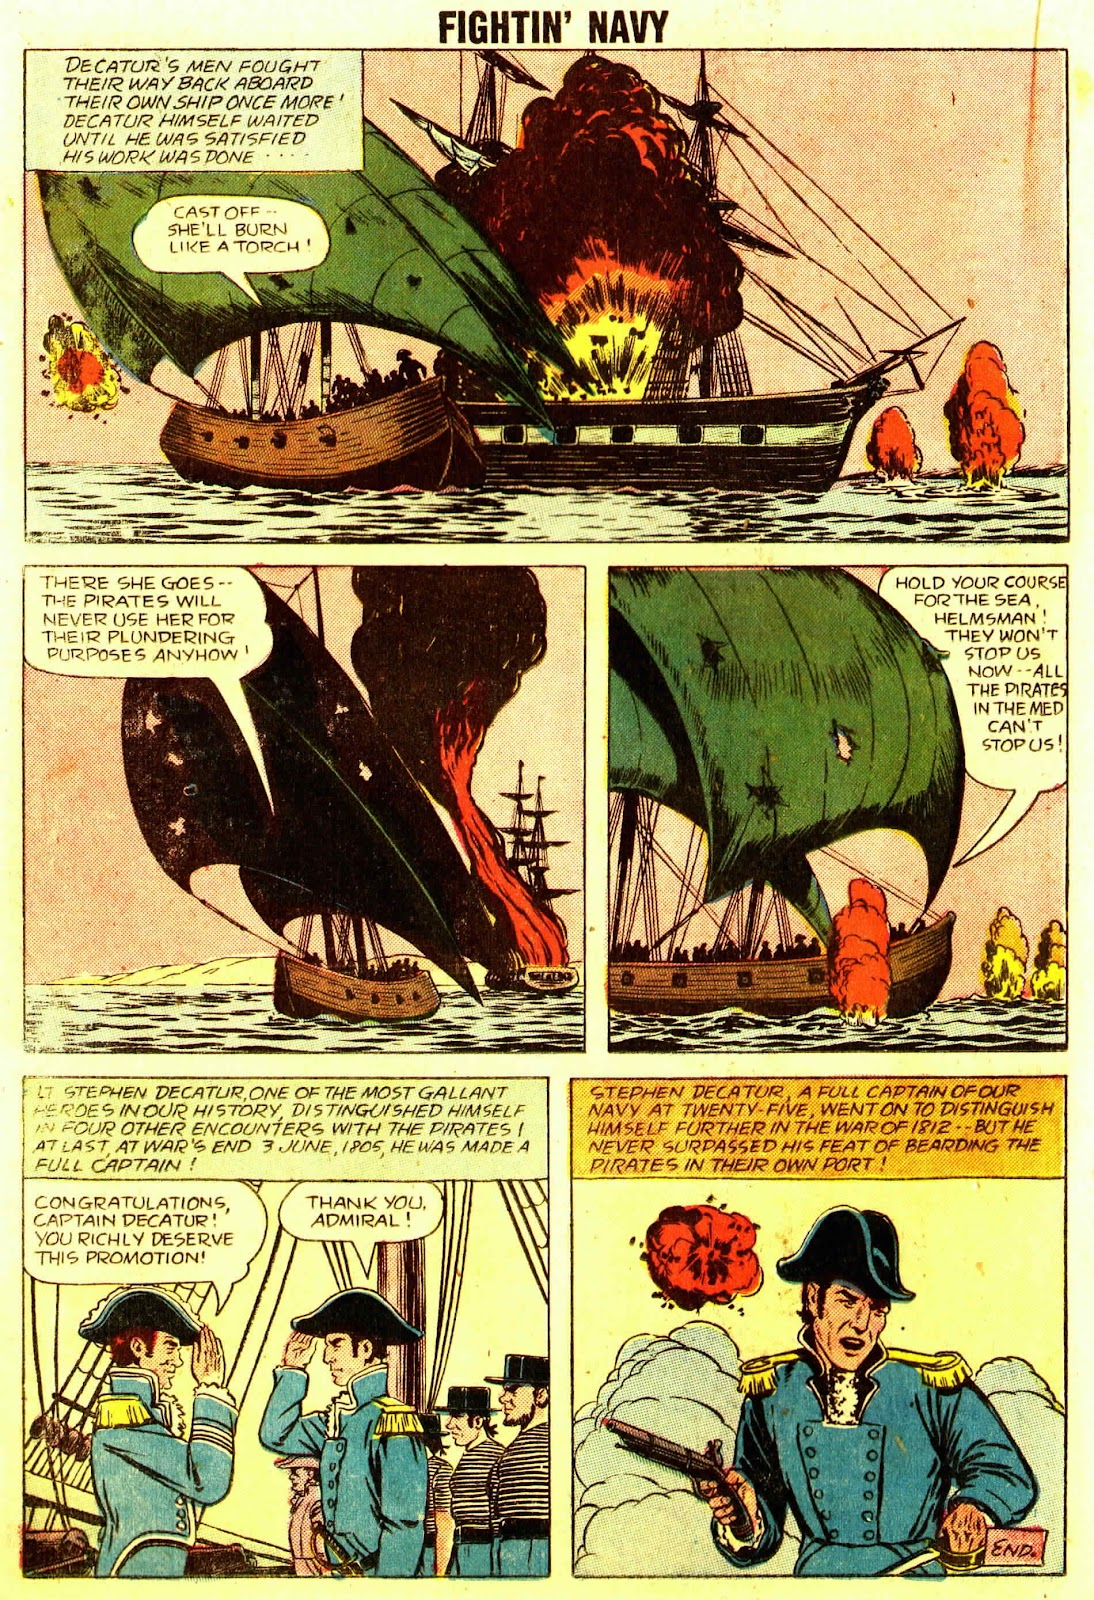 Read online Fightin' Navy comic -  Issue #83 - 32